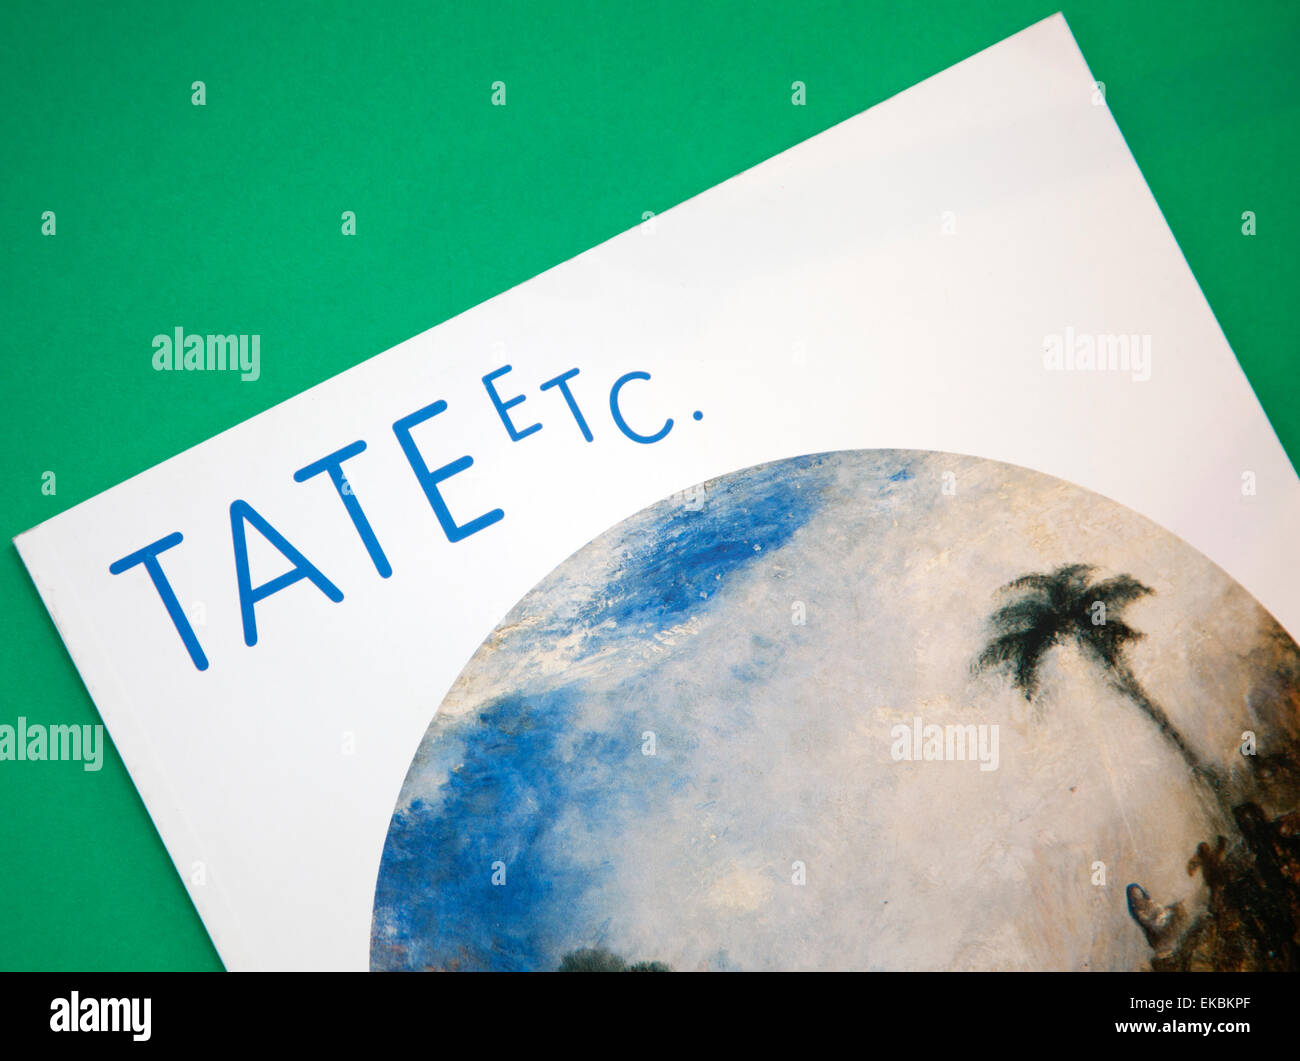 Tate Galleries 'Tate etc' magazine, London - Stock Image